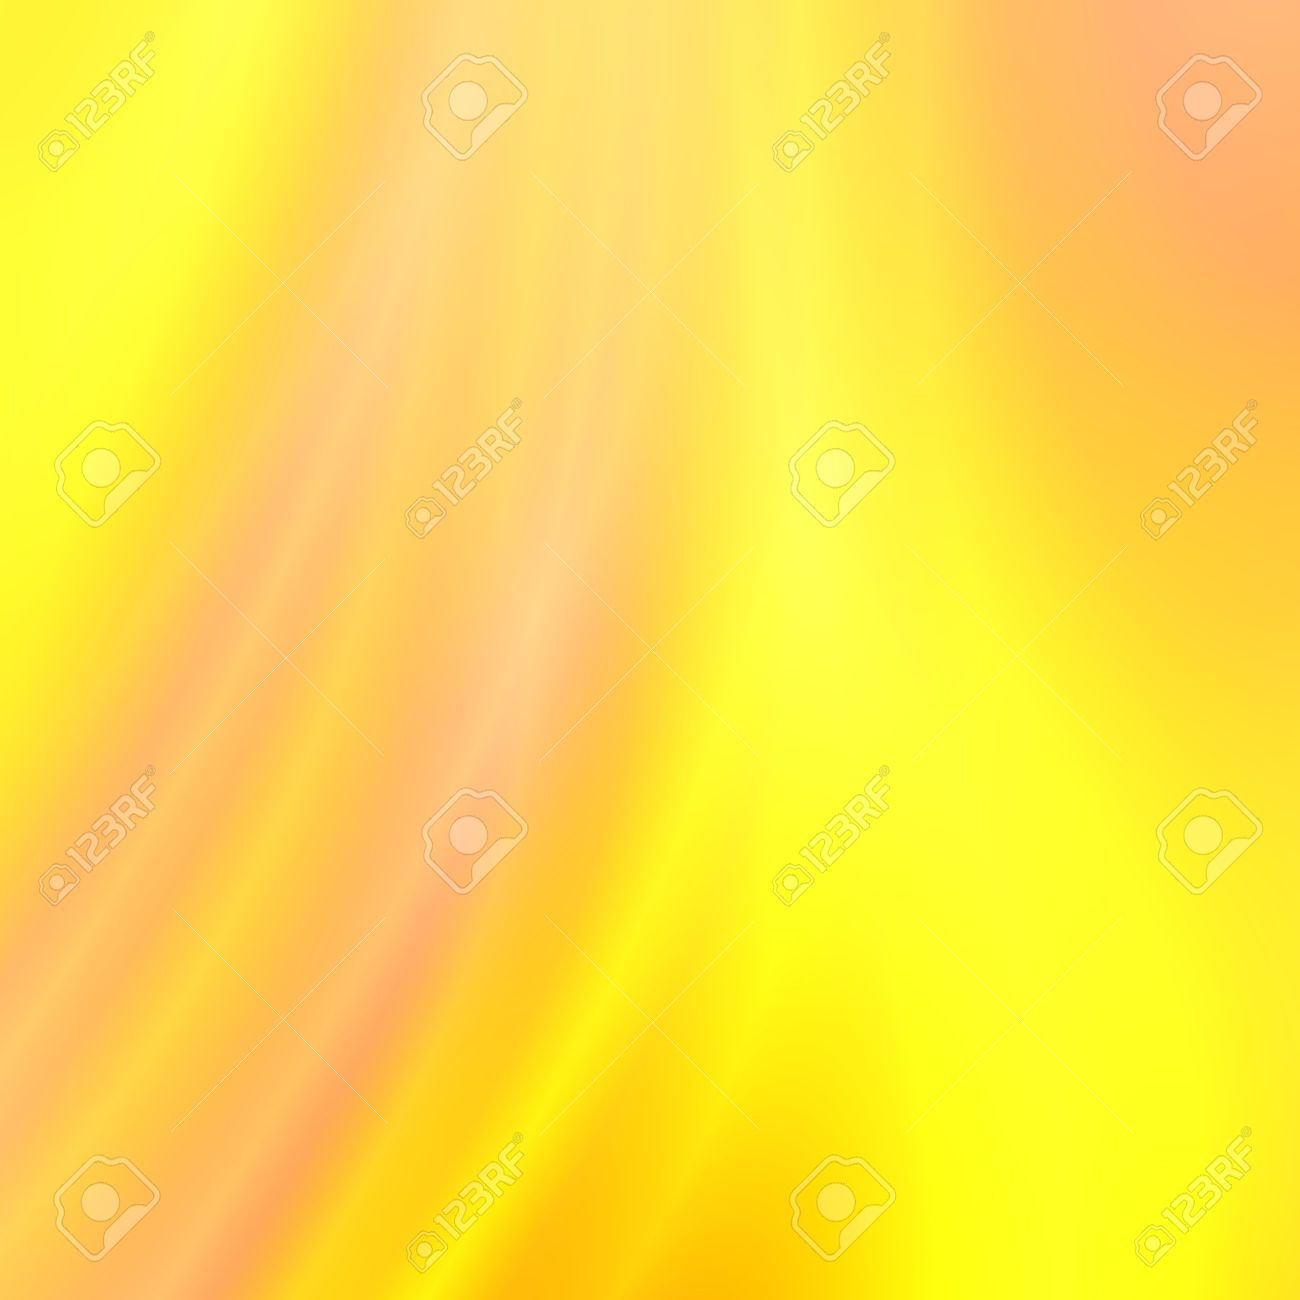 yellow flyer background google search yellow yellow flyer background google search